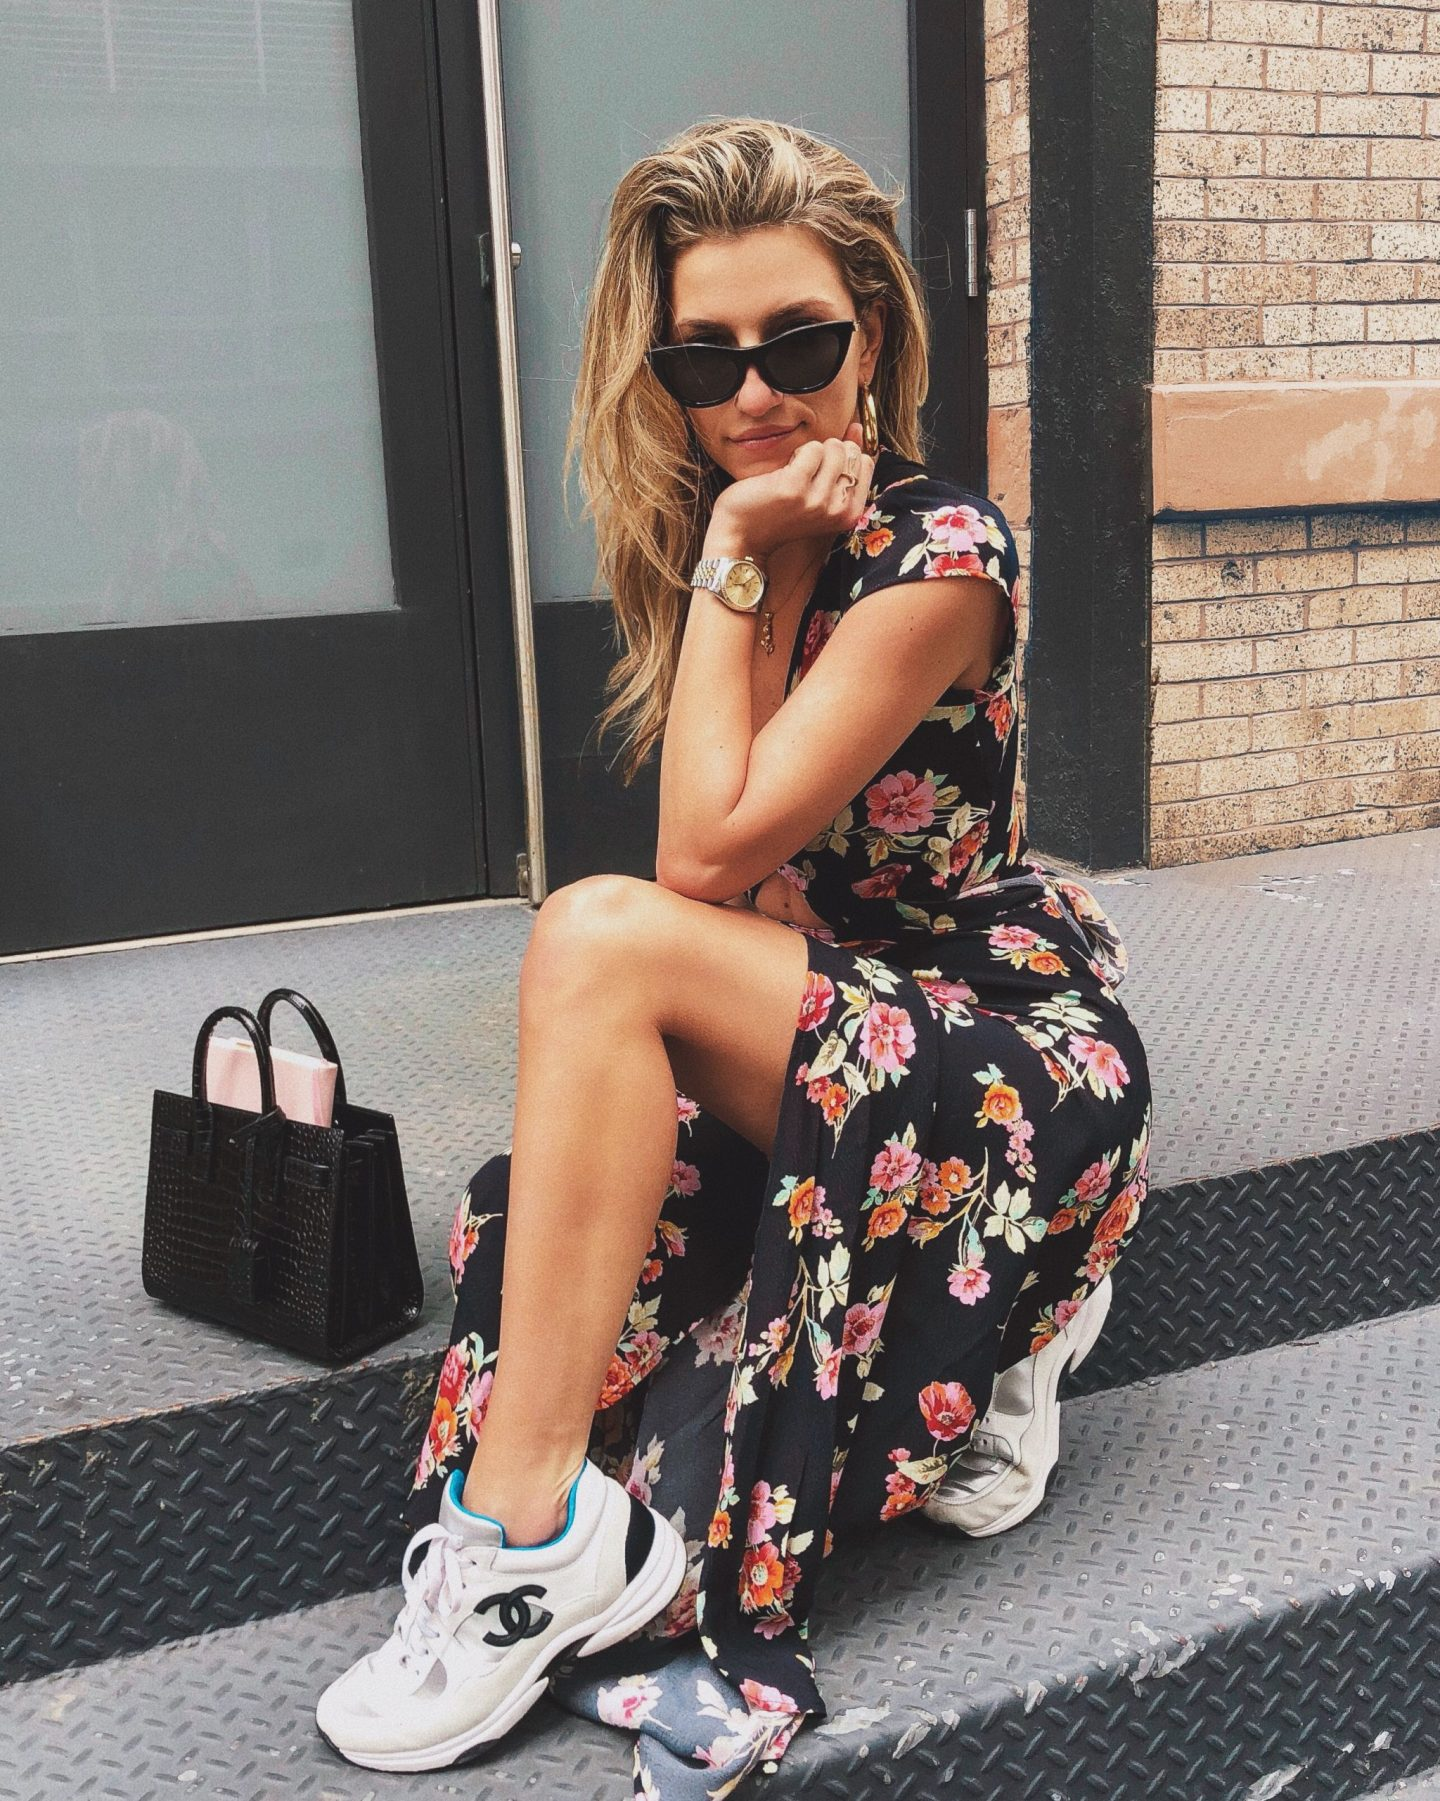 Cassandra DiMicco, Cass DiMicco, Dressed For Dreams, NYC, New York City, New York, Street Style NYC, Street Style 2018, NYC Street Style Street Style Outfits, 2018 Trends, NYC Fashion Blogger, Chanel sneakers, sac du jour, saint Laurent purse, floral maxi dress, le specs sunnies